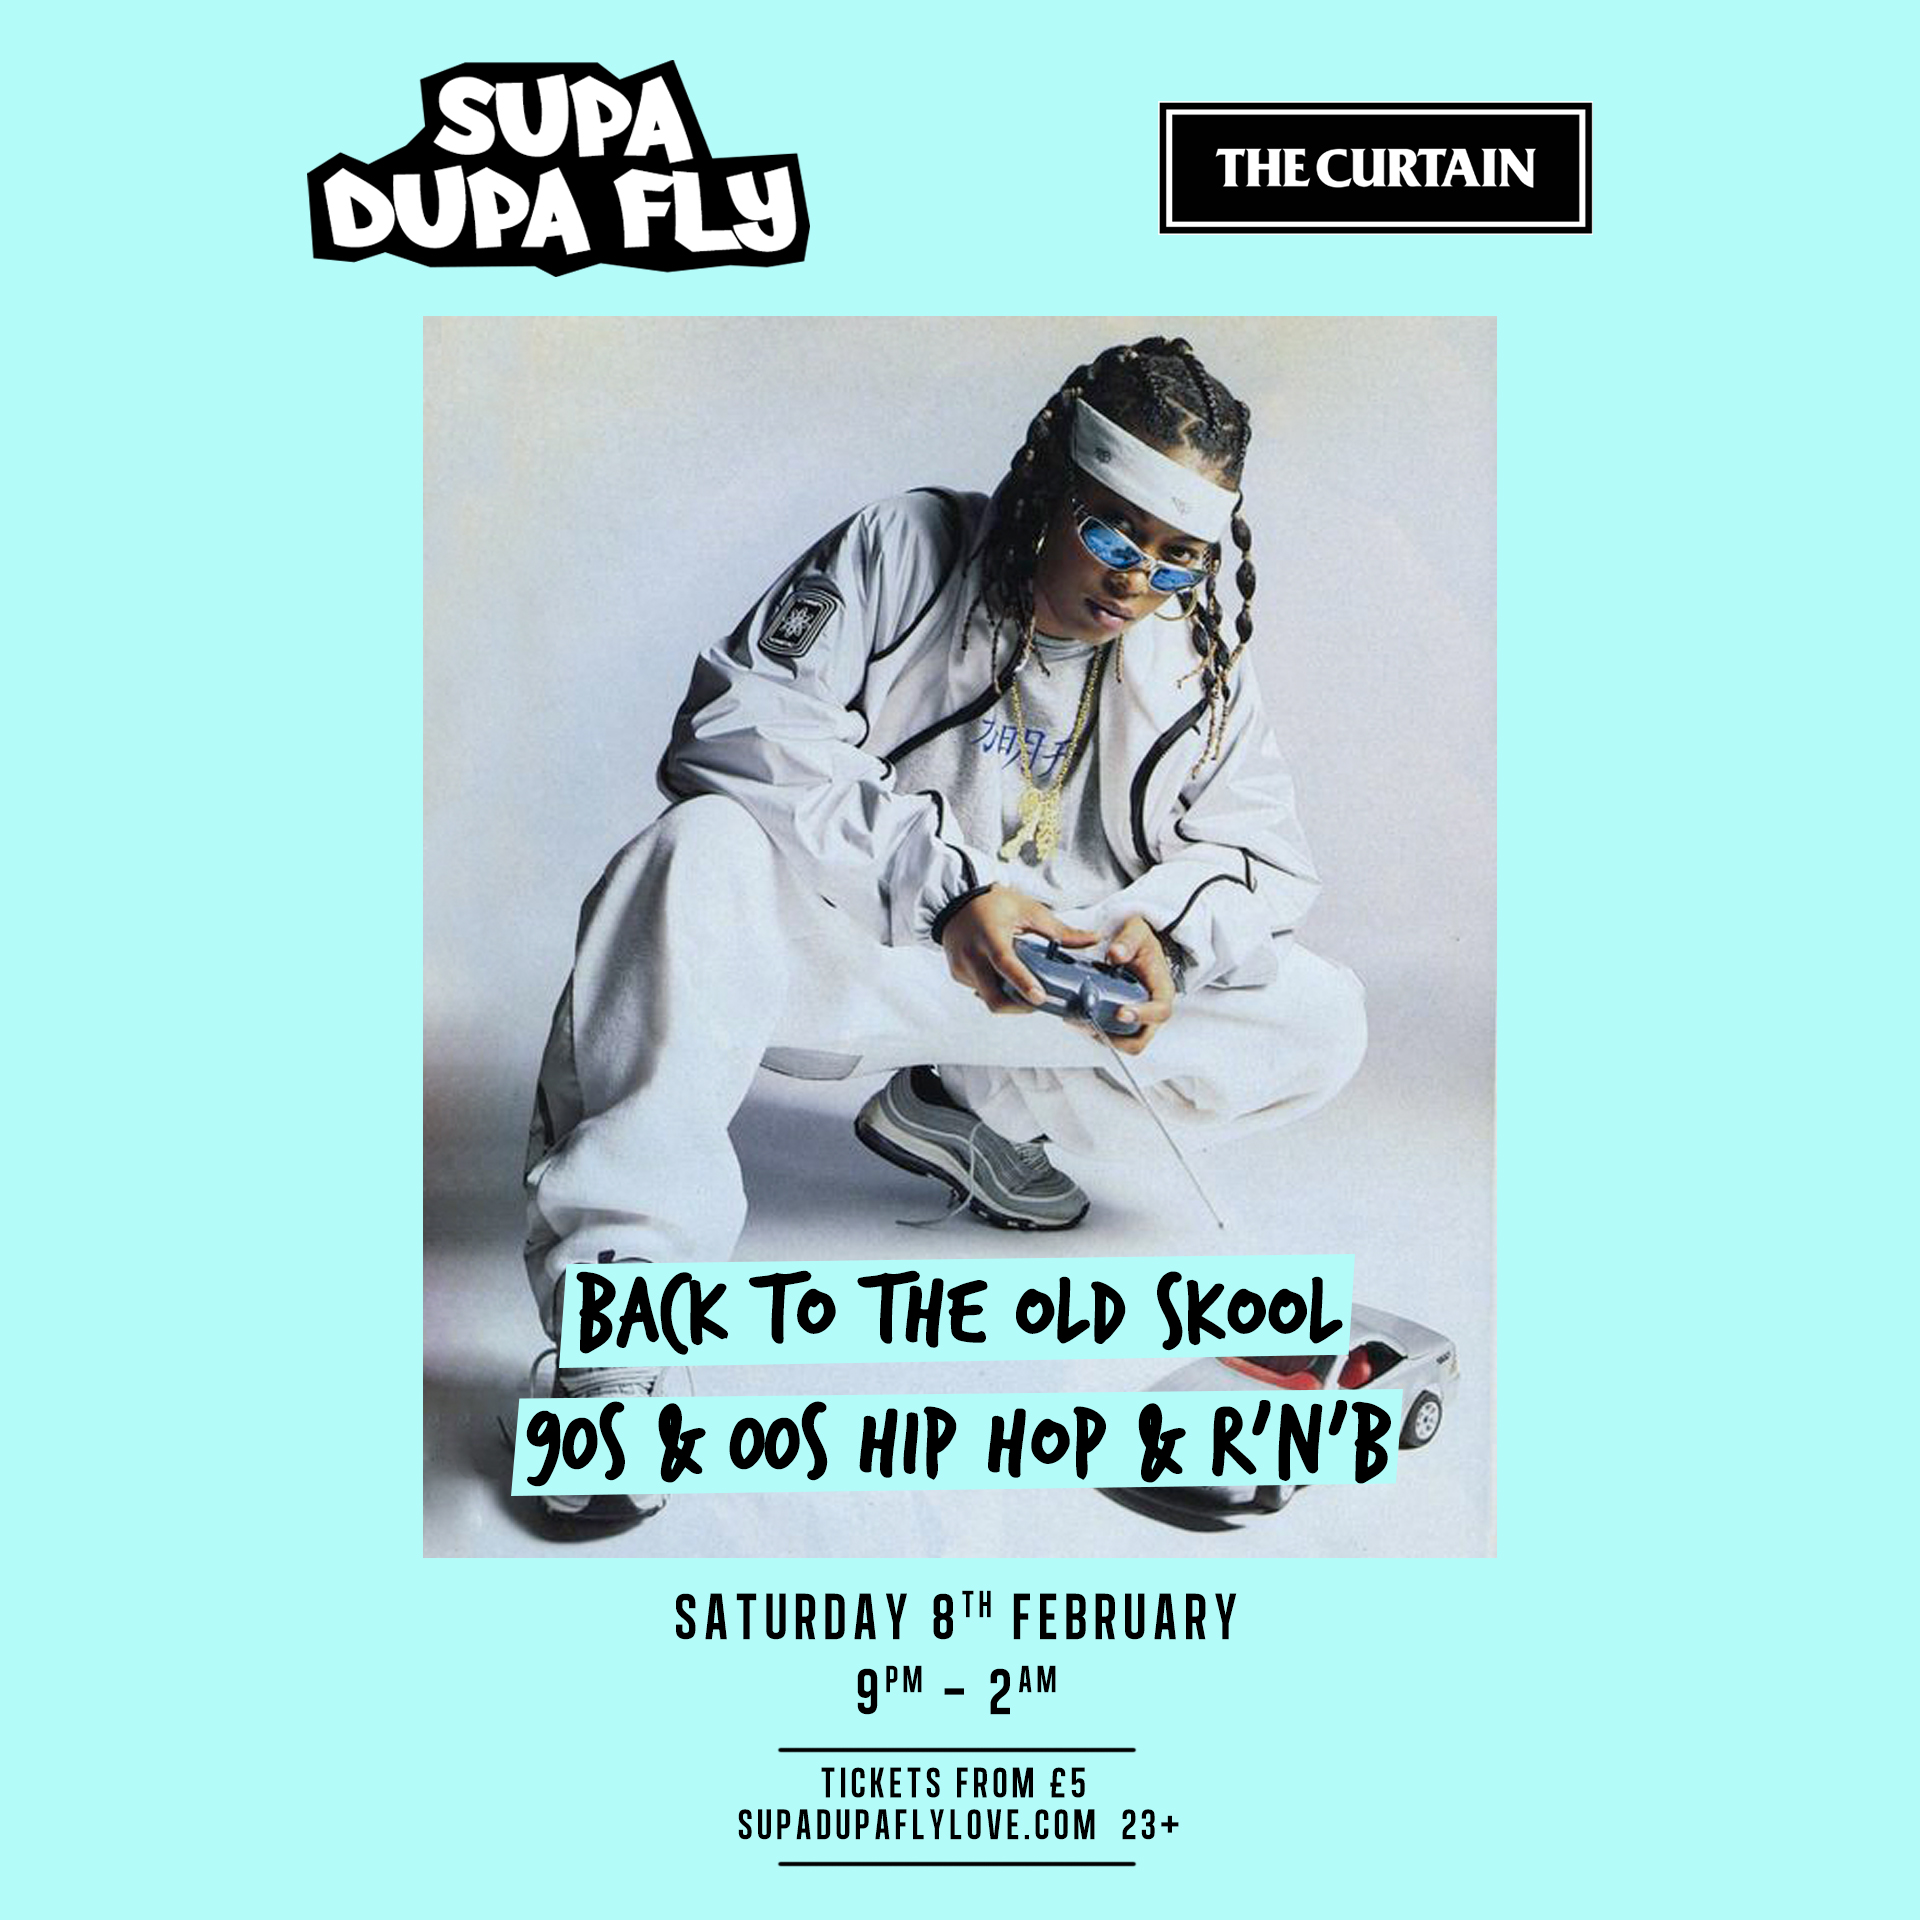 Supa Dupa Fly x Back To The Old Skool x The Curtain / April Cancelled